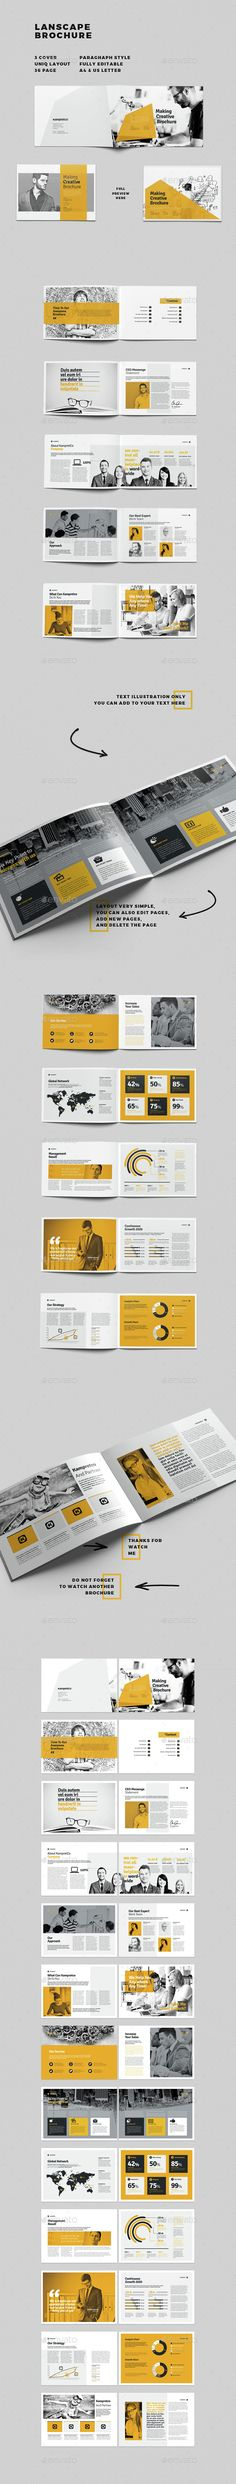 Product Information Brochure Templates Brochure template - landscape brochure